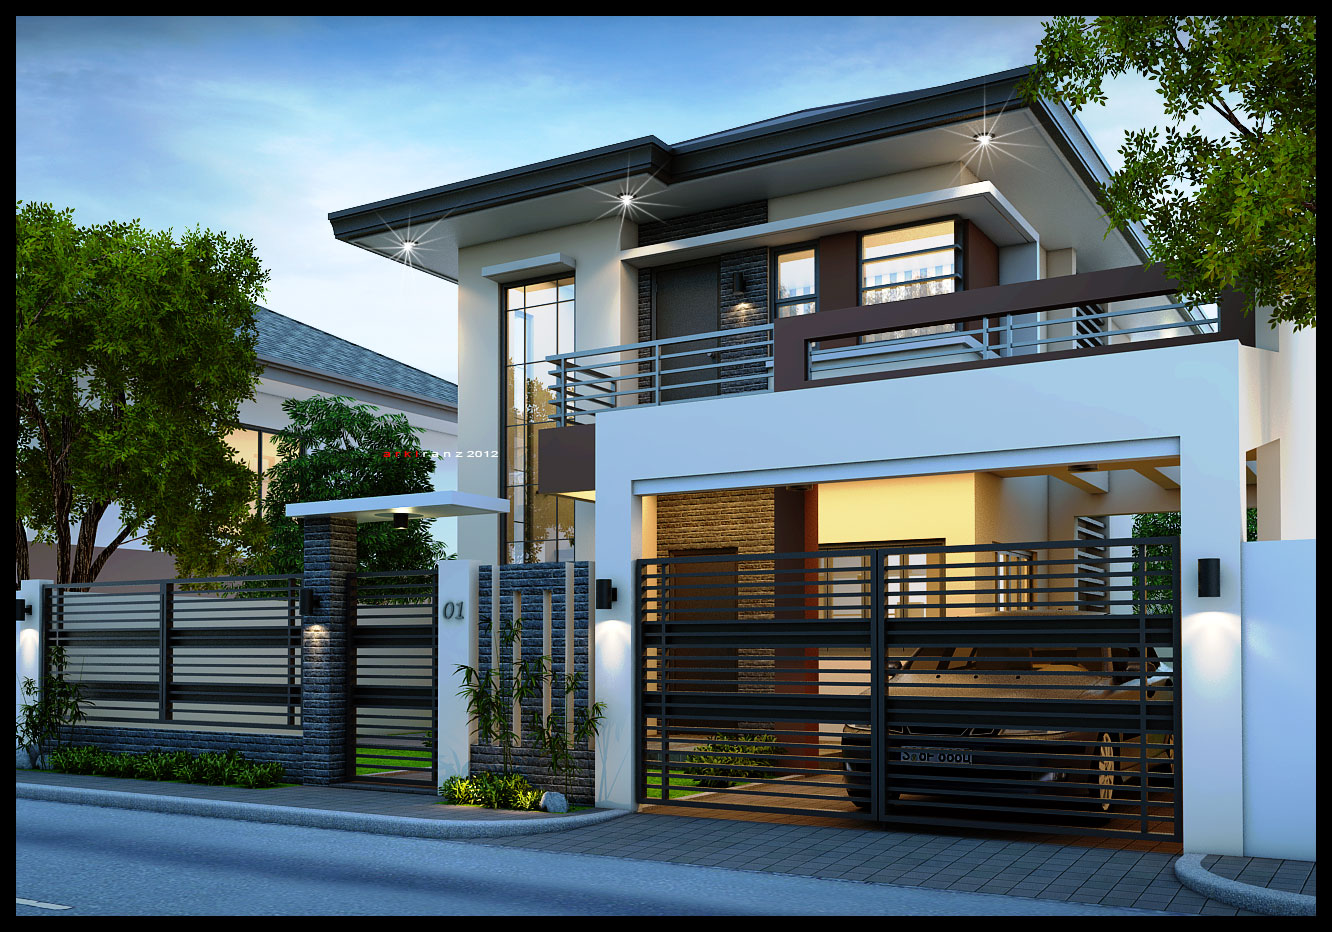 2 storey modern small houses with gate of philippines for House design philippines 2 storey